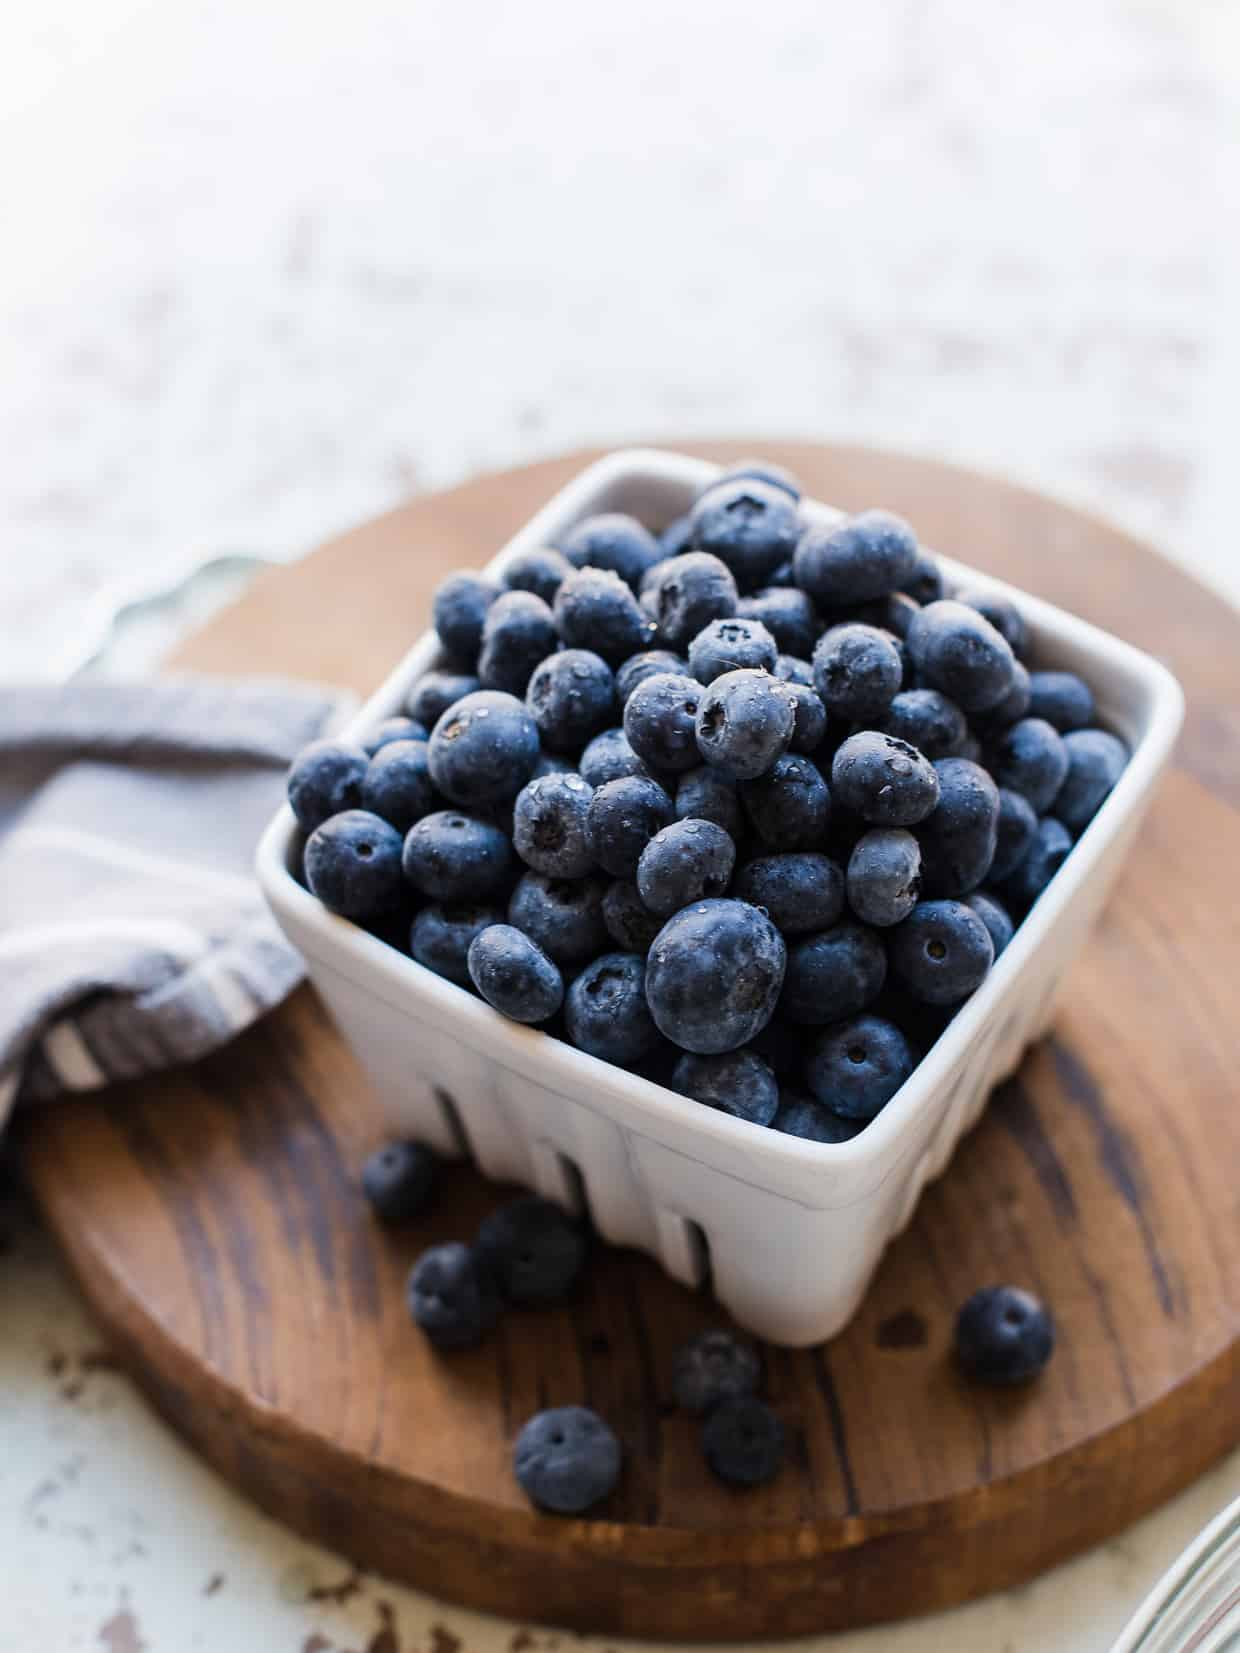 Fresh blueberries in a white basket on a wooden cutting board.